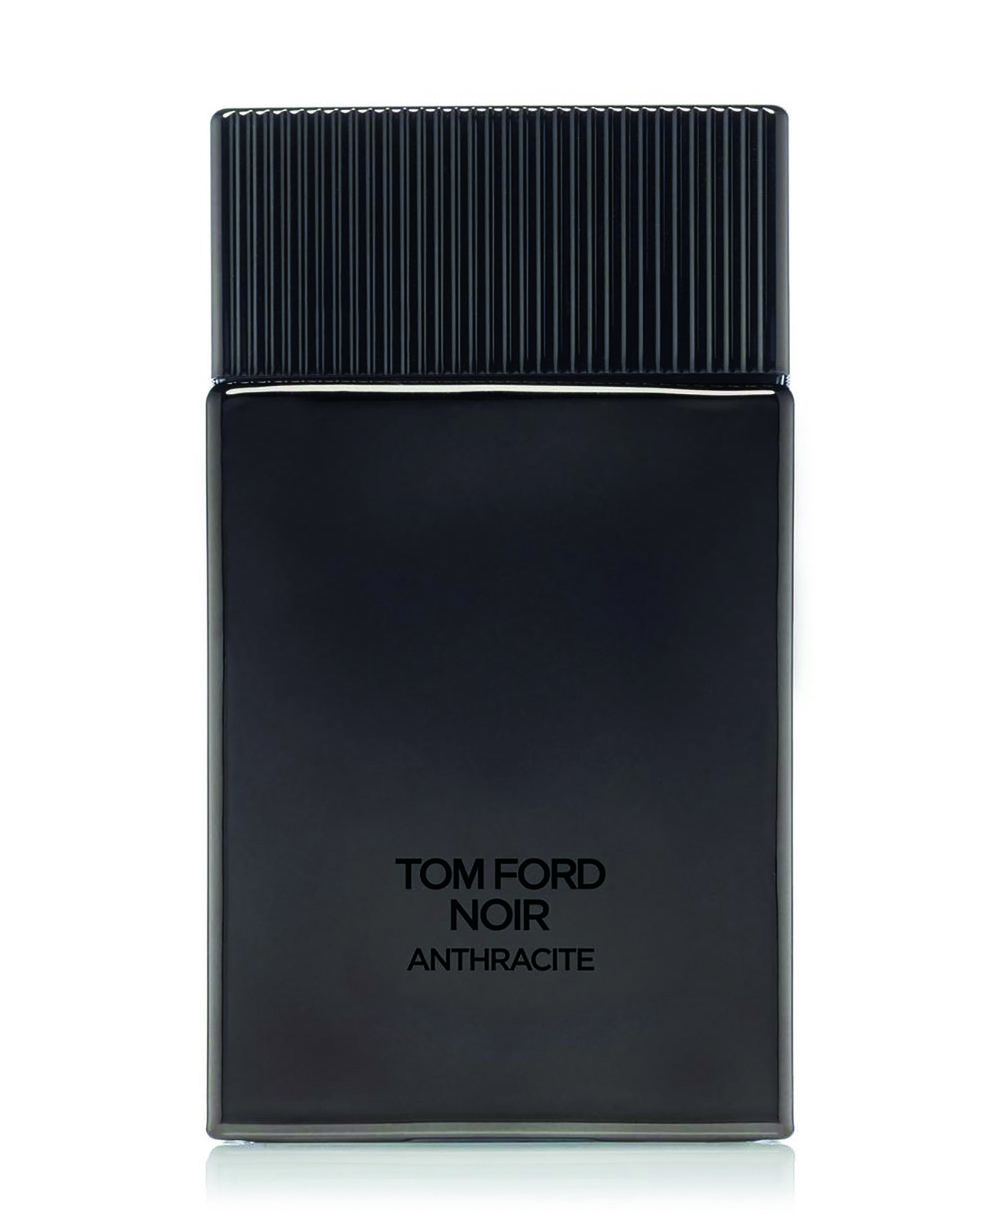 TOM FORD Noir Anthracite ($202 - 100ml).